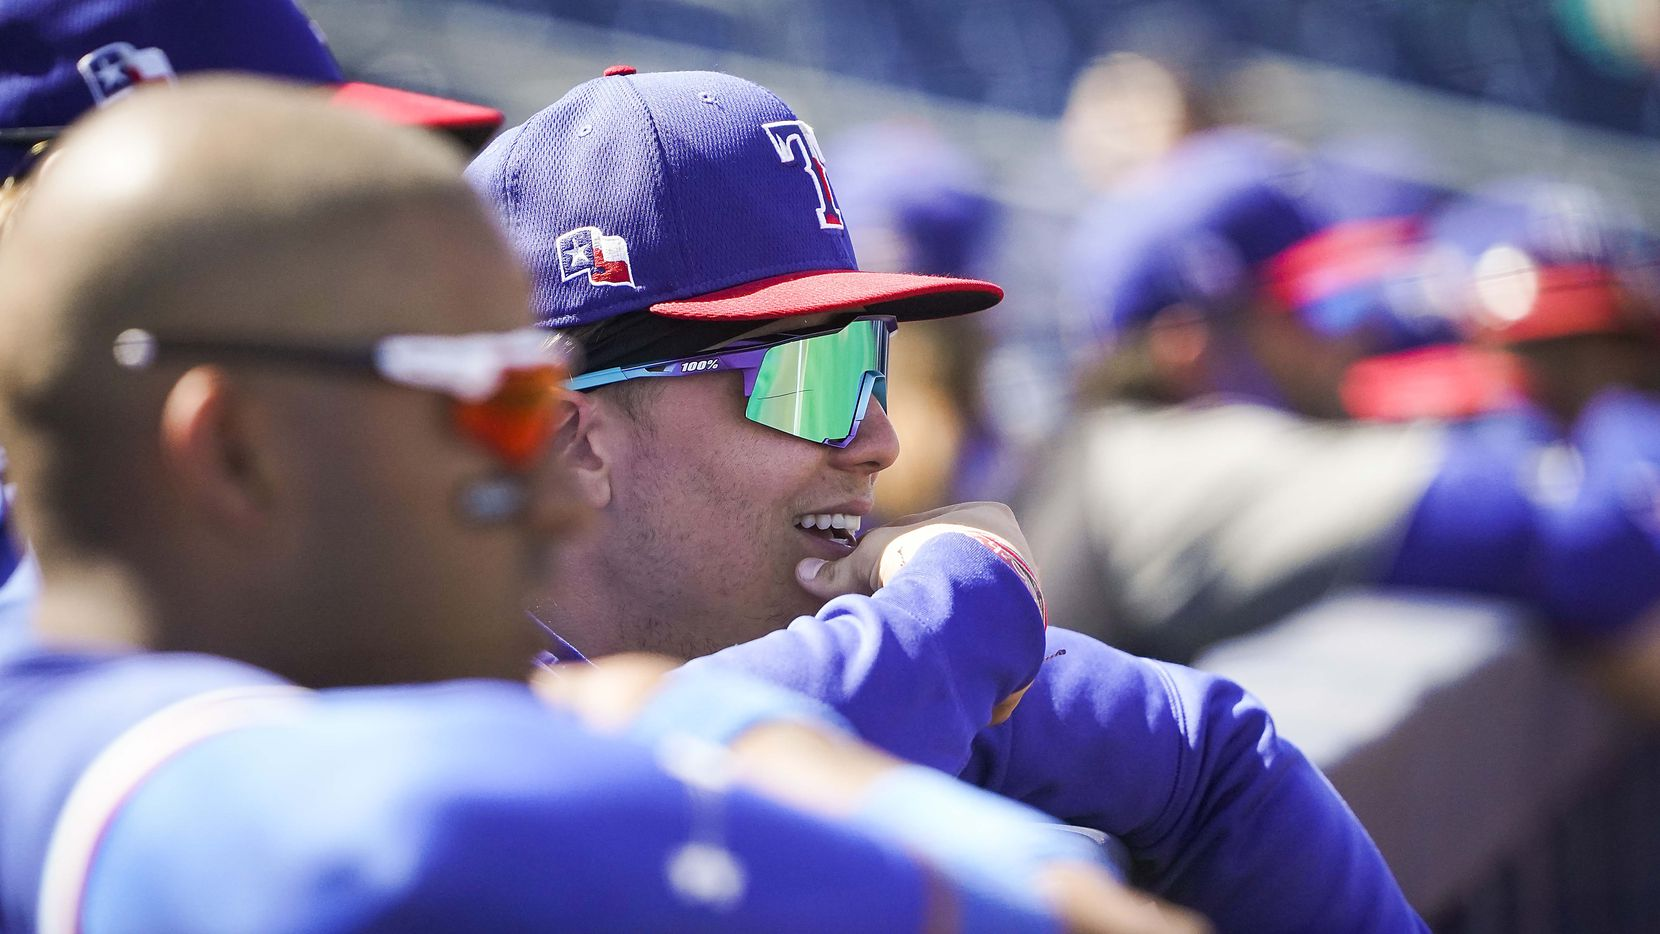 Texas Rangers outfielder Steele Walker watches from the dugout during a spring training game against the Seattle Mariners at Peoria Sports Complex on Wednesday, March 10, 2021, in Peoria, Ariz.